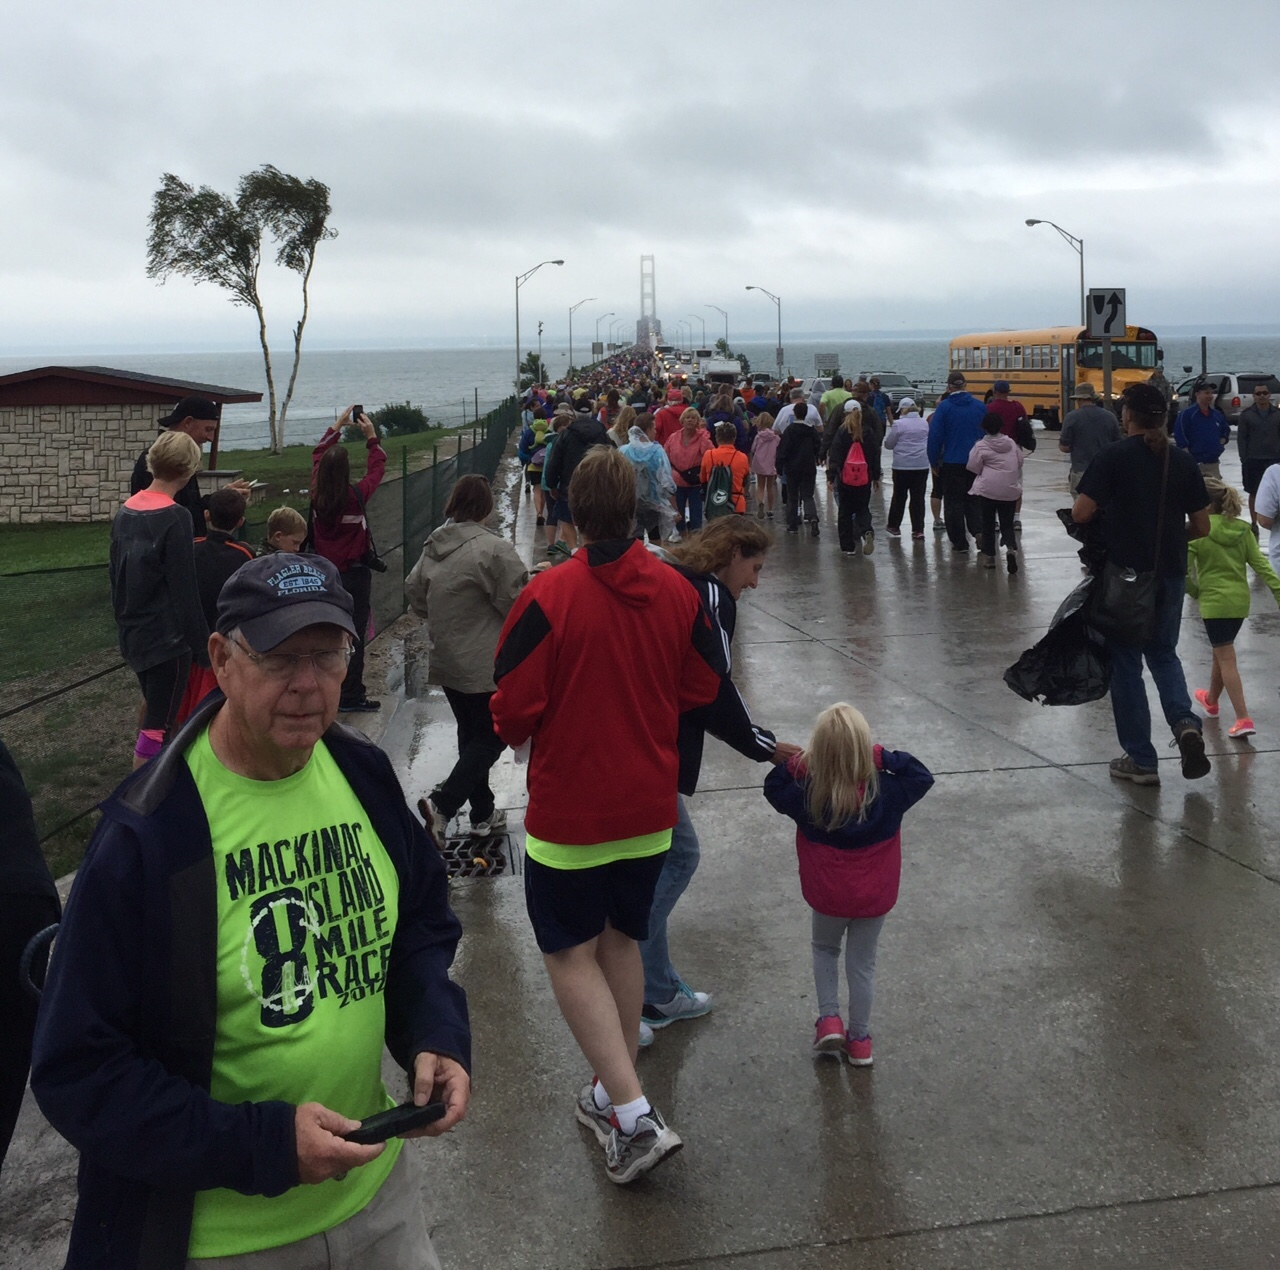 Stormy Labor Day weather didn't stop Ted from joining approximately 40,000 other walkers for the Annual Labor Day Bridge Walk. This photo is just before he joins the crowd at the beginning point in St. Ignace.